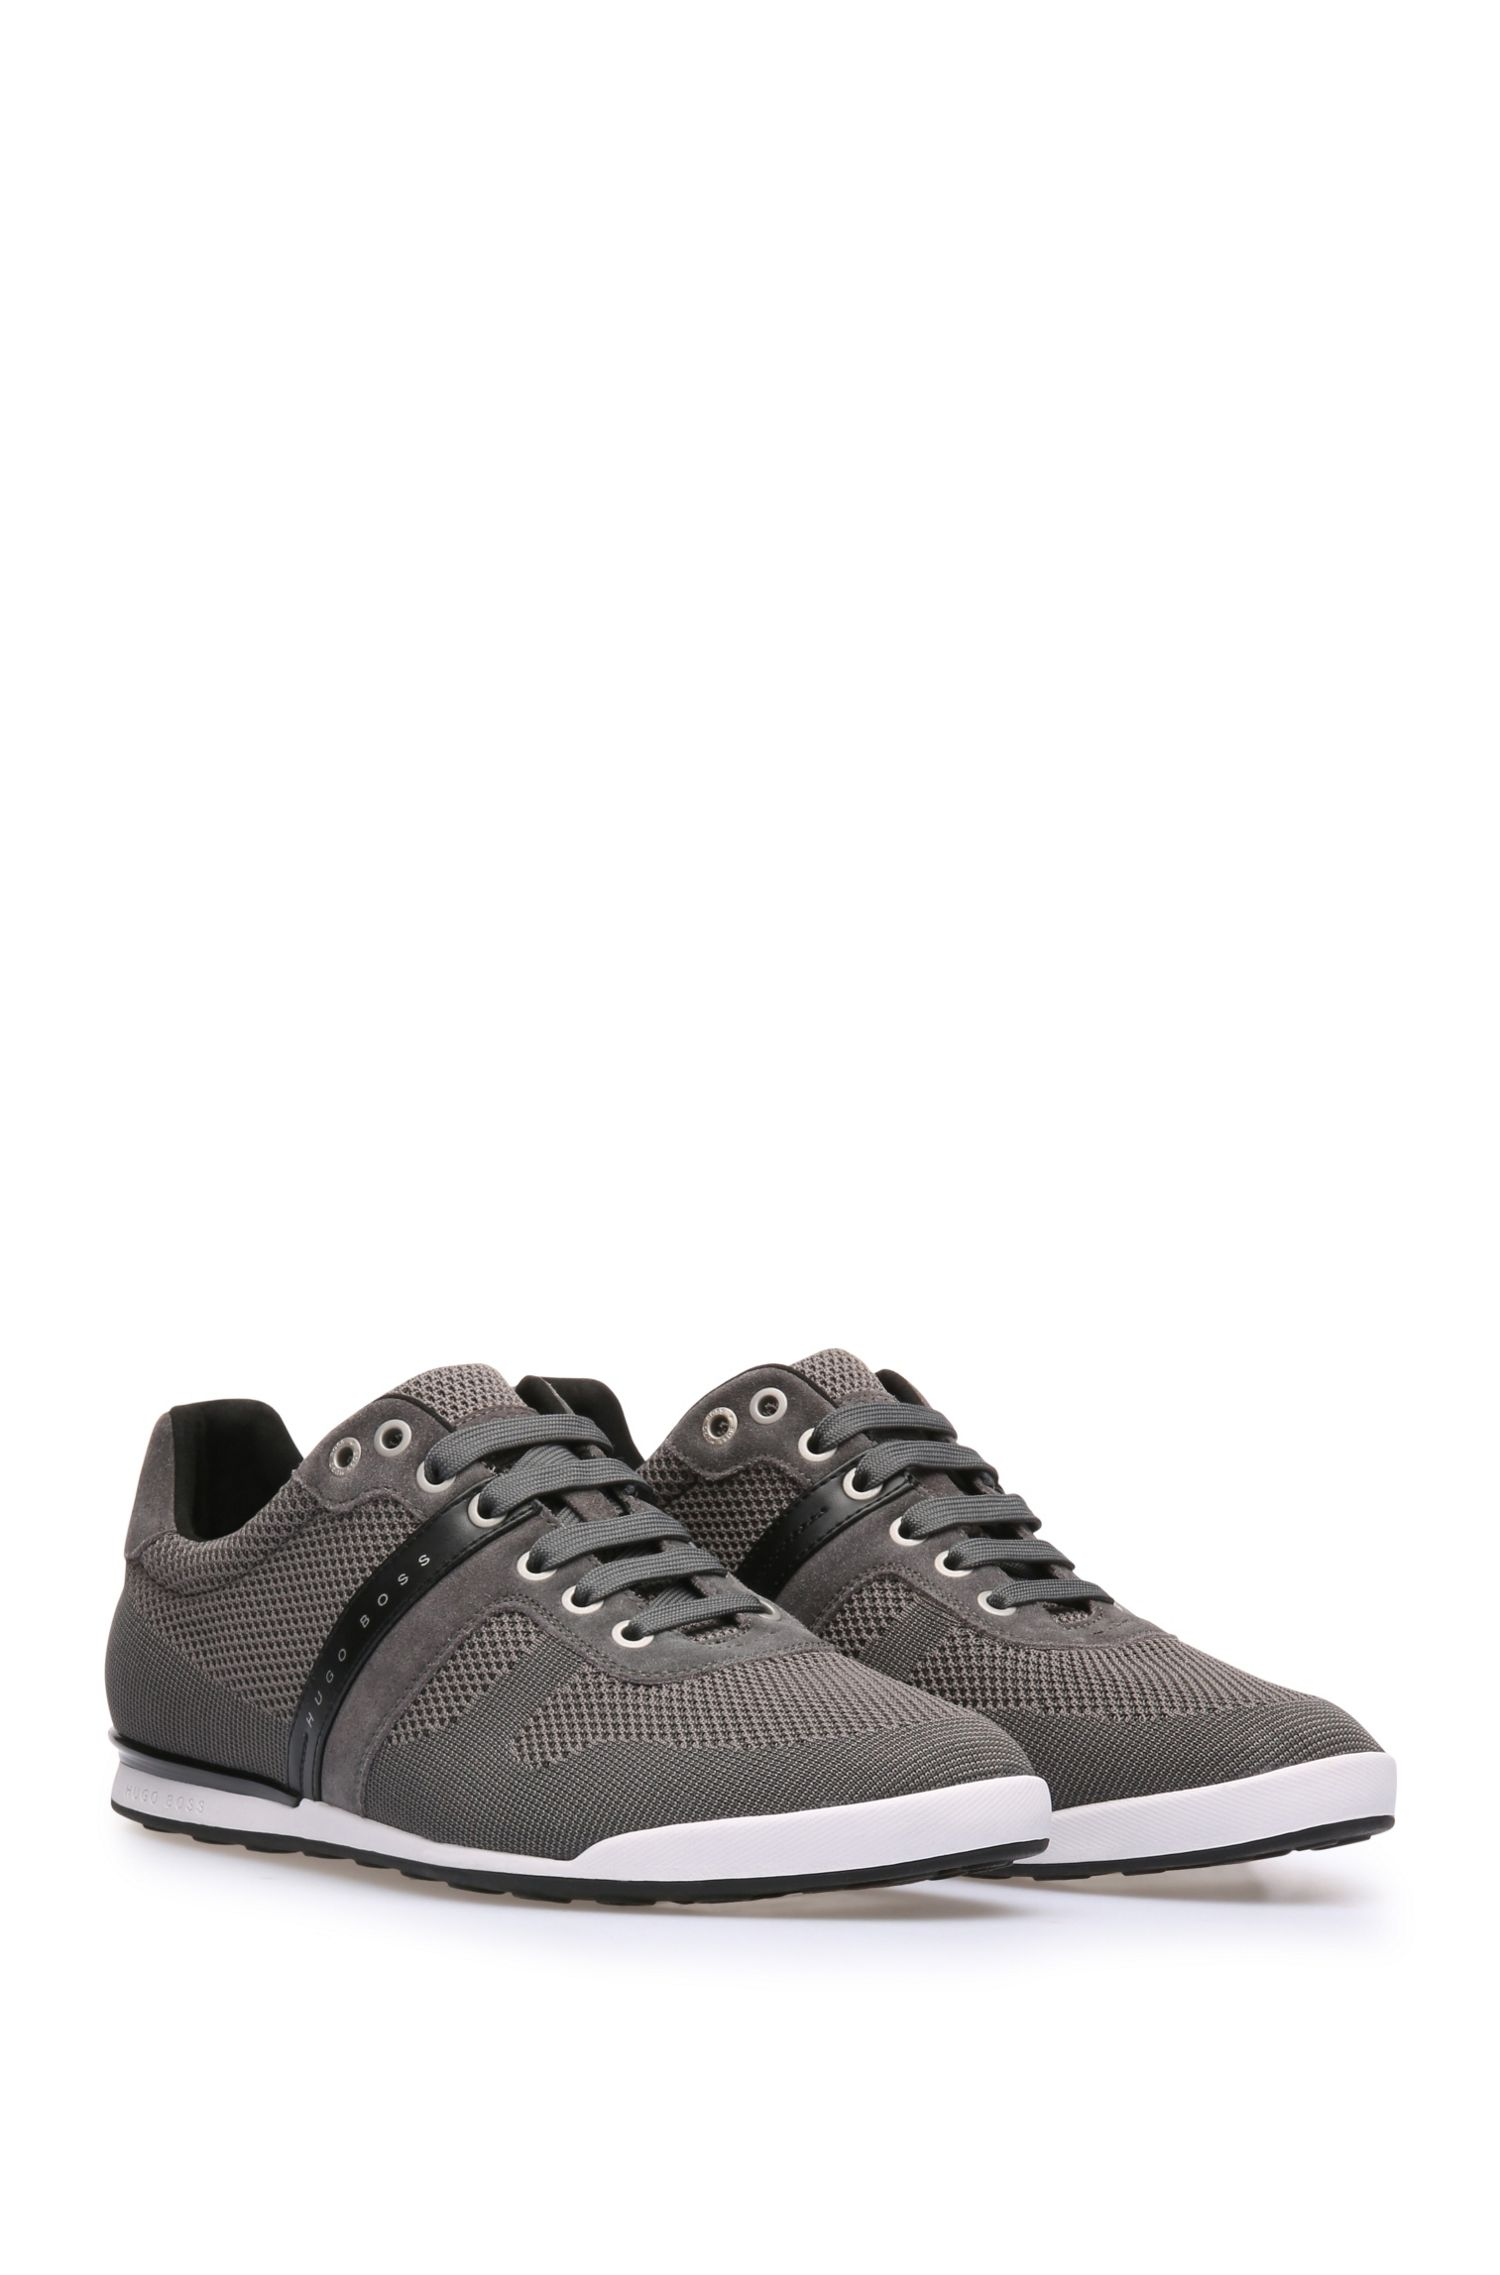 Jersey and Leather Sneaker | Arkansas Lowp Syjq, Dark Grey